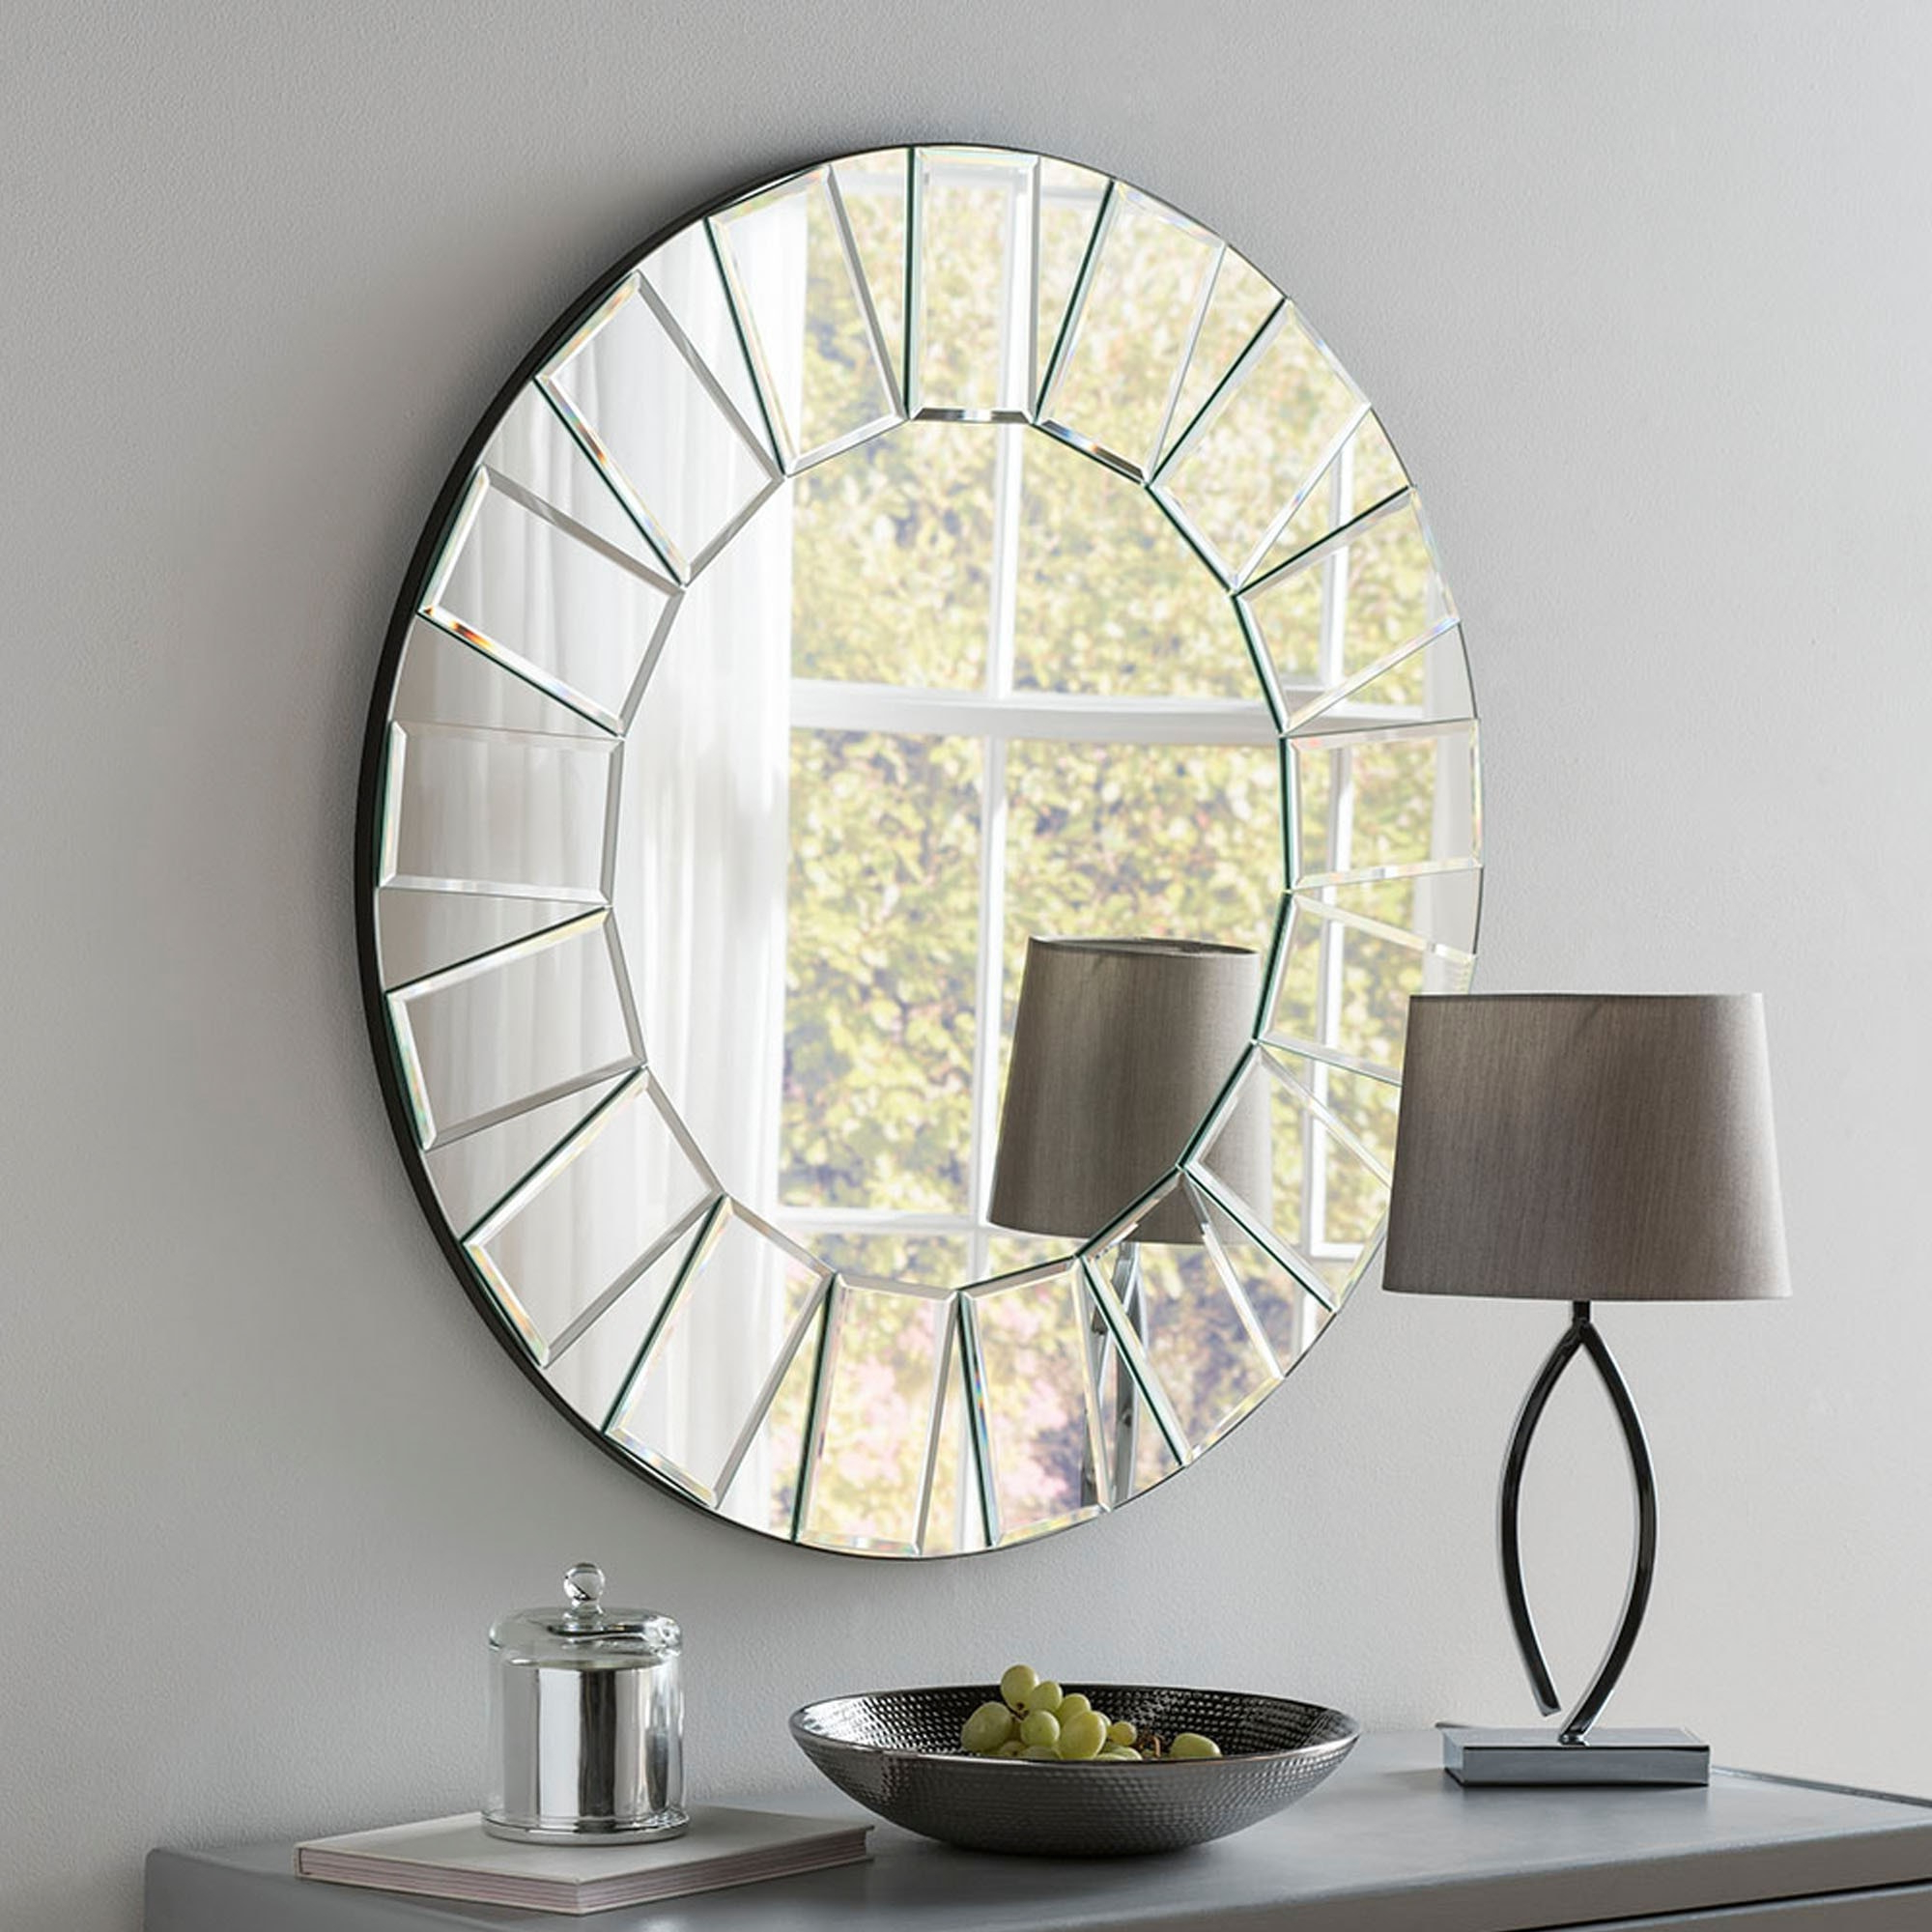 Venetian Wall Mirrors Throughout 2020 Contemporary Venetian Wall Mirror (View 3 of 20)